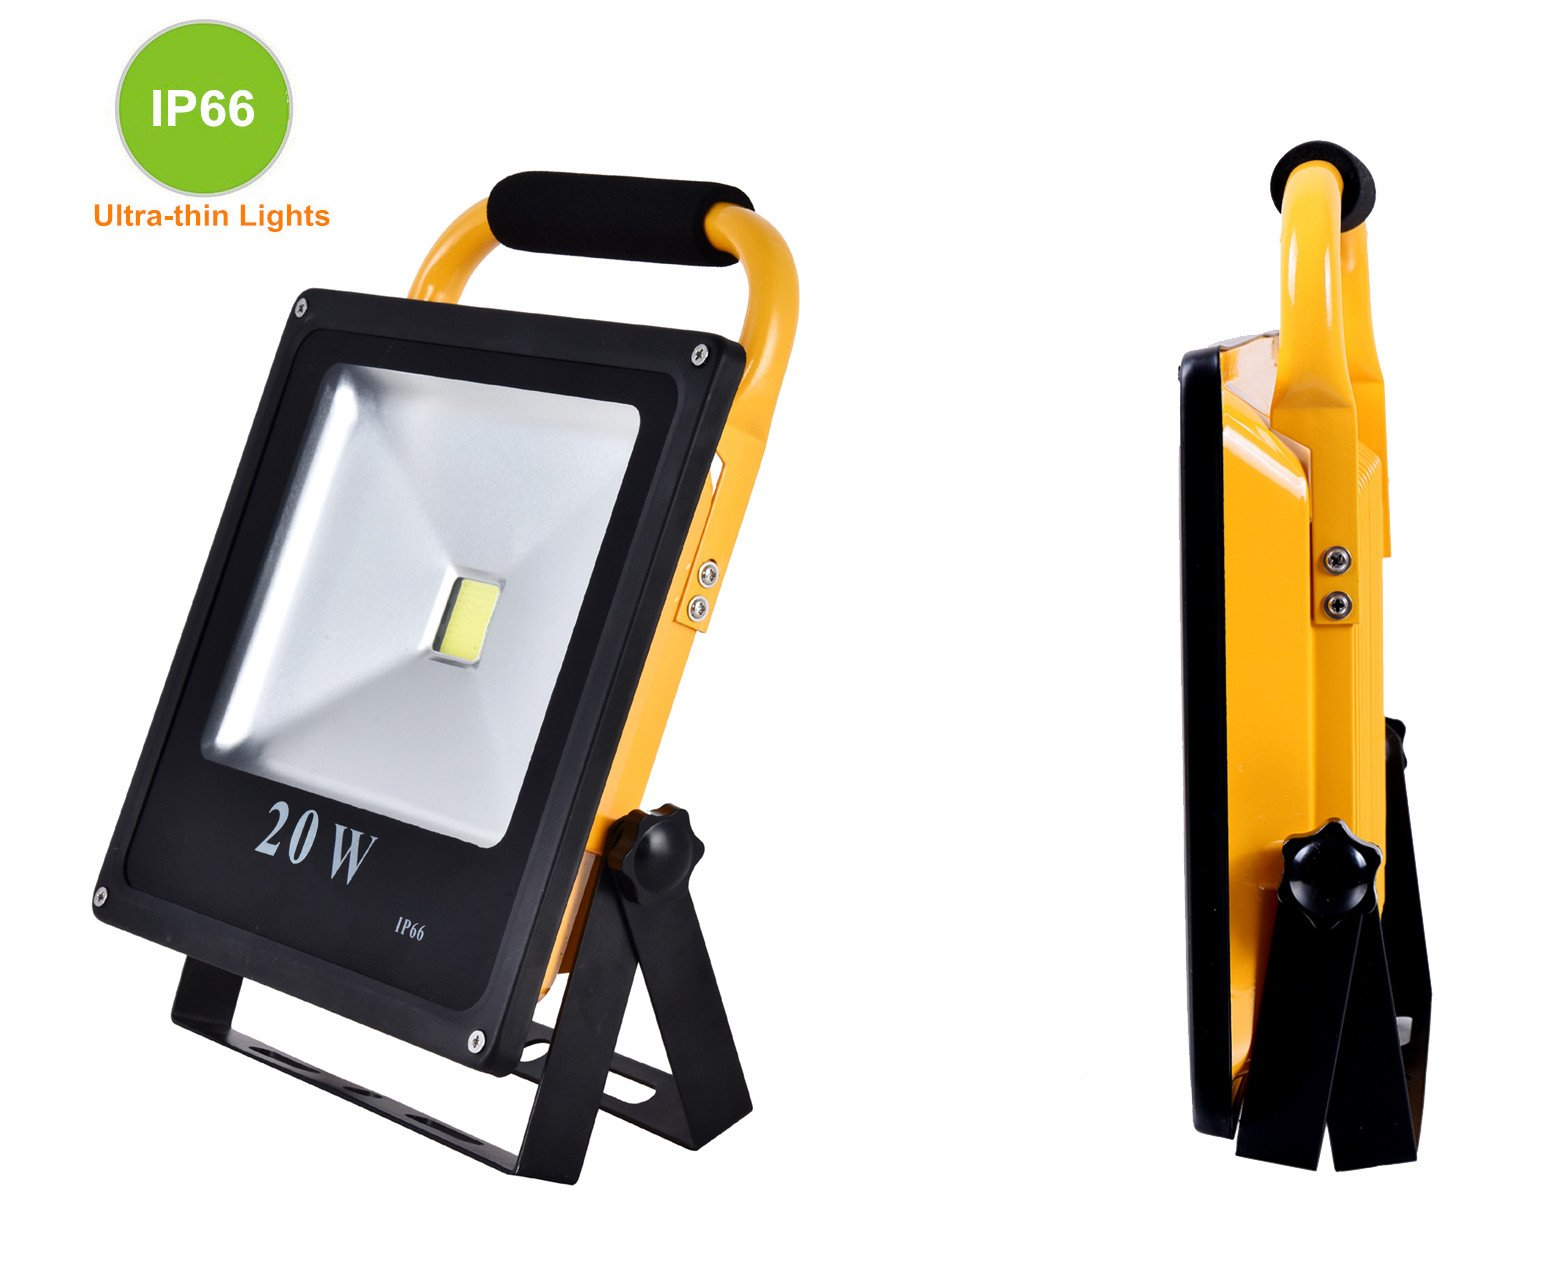 Starsea Portable Work Lights 20W, Rechargeable Led Flood Light with 18650 Lithium Batteries IP66 Waterproof, Rechargeable Led Spotlight, Work Light Adapter Included